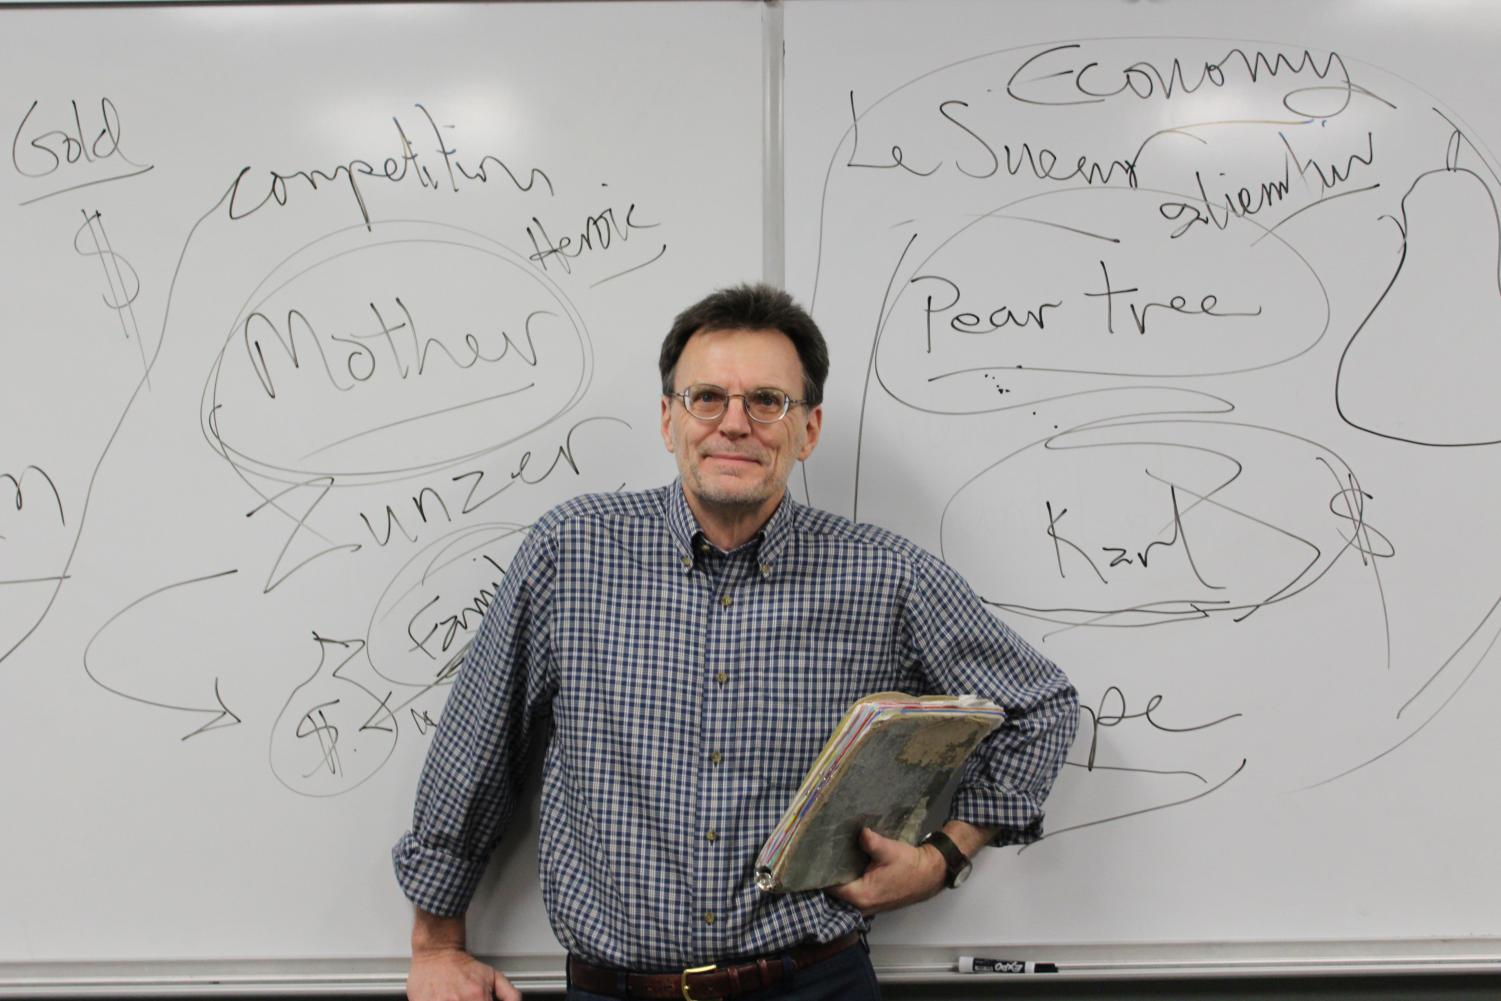 Mark Olson stands in front of his signature board of notes.